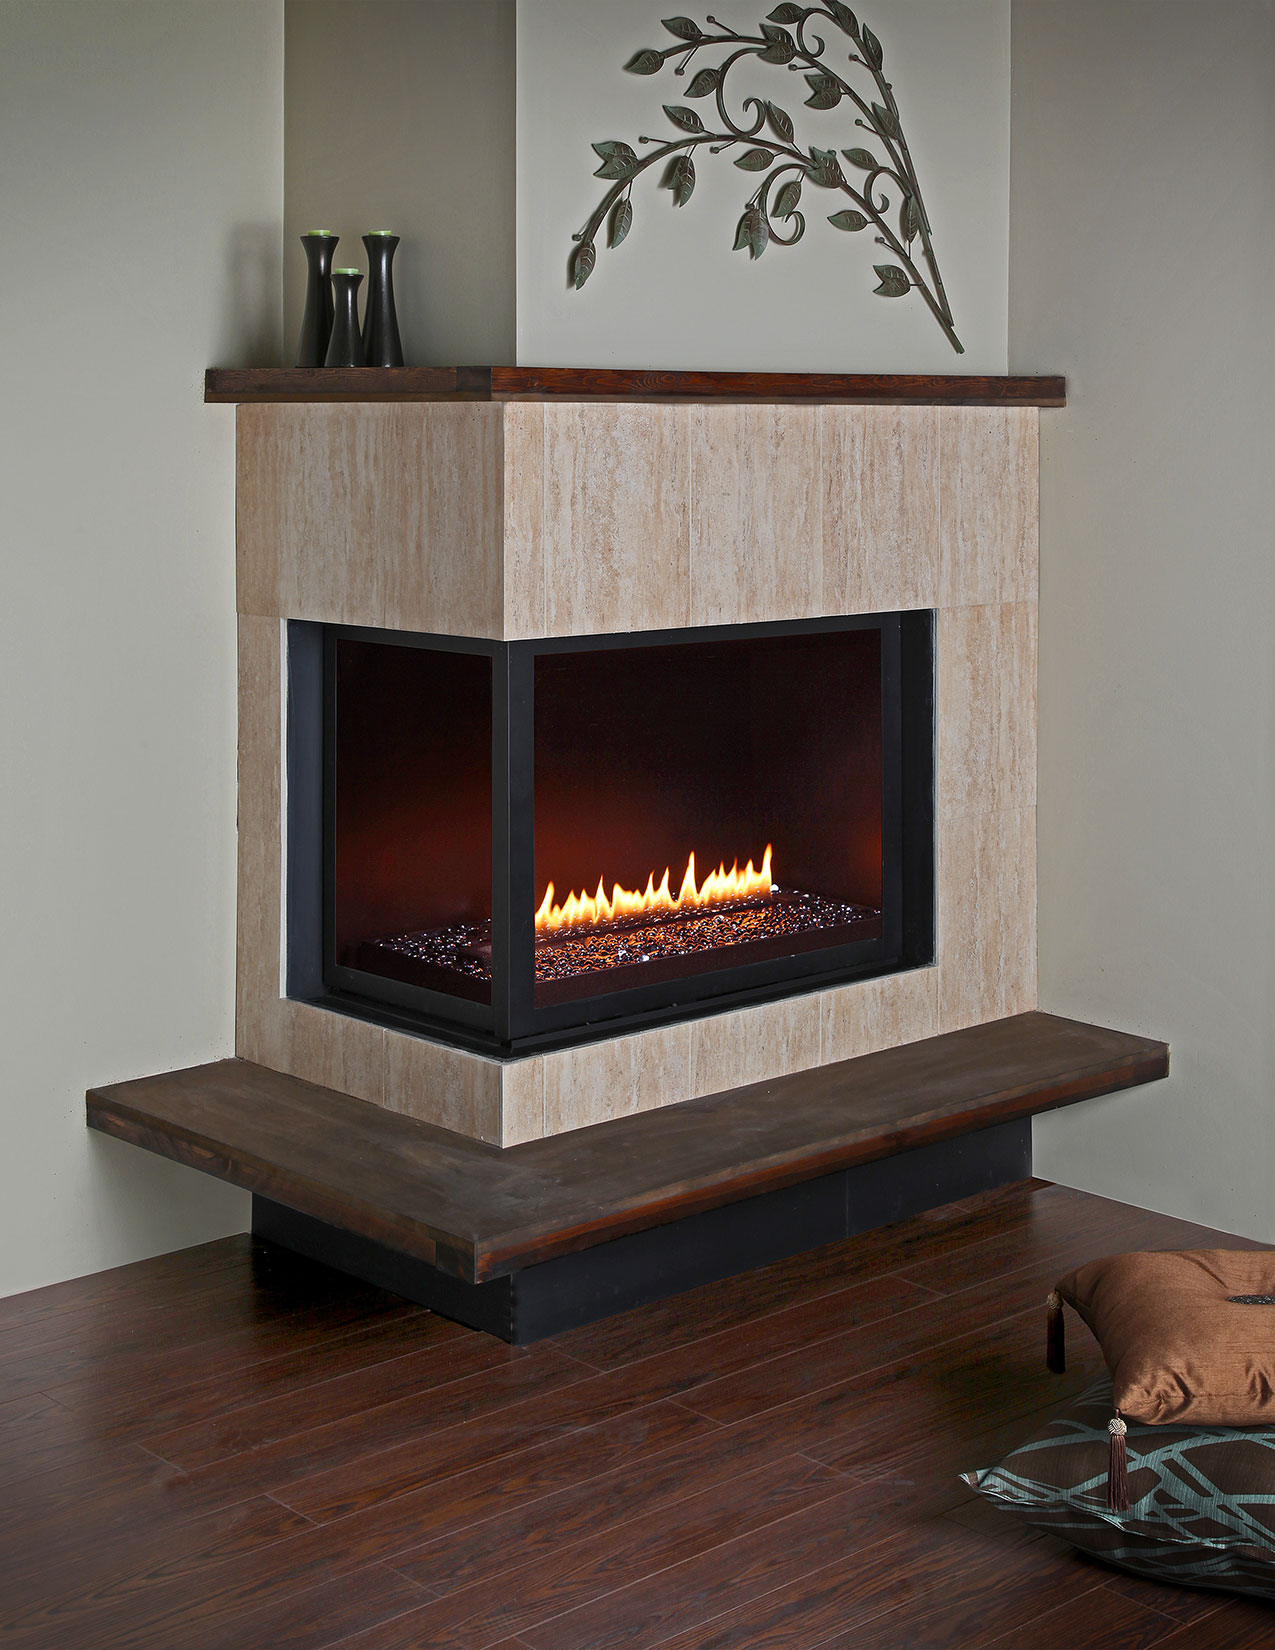 Boulevard Fireplace Best Of Montigo H Series Corner — the Fireplace Specialist